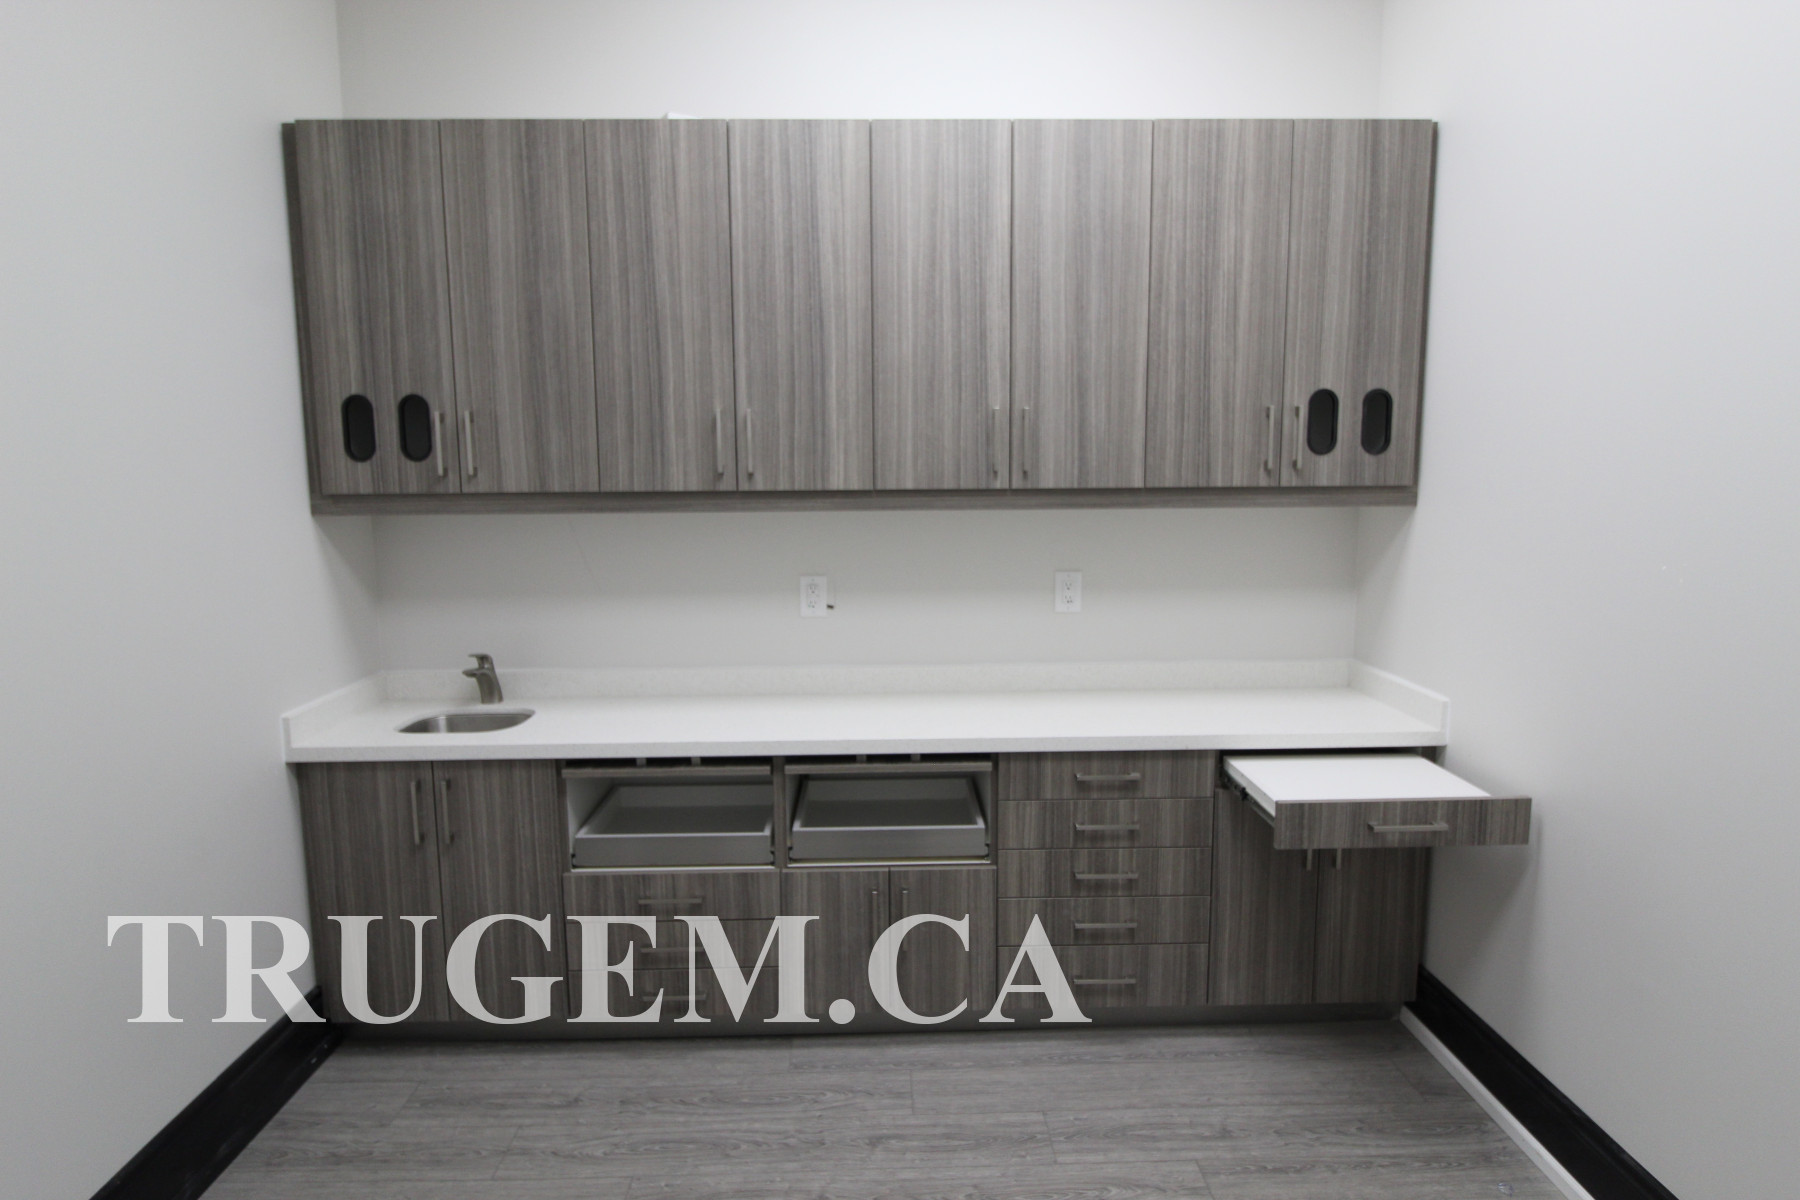 Cabinets of Dental office